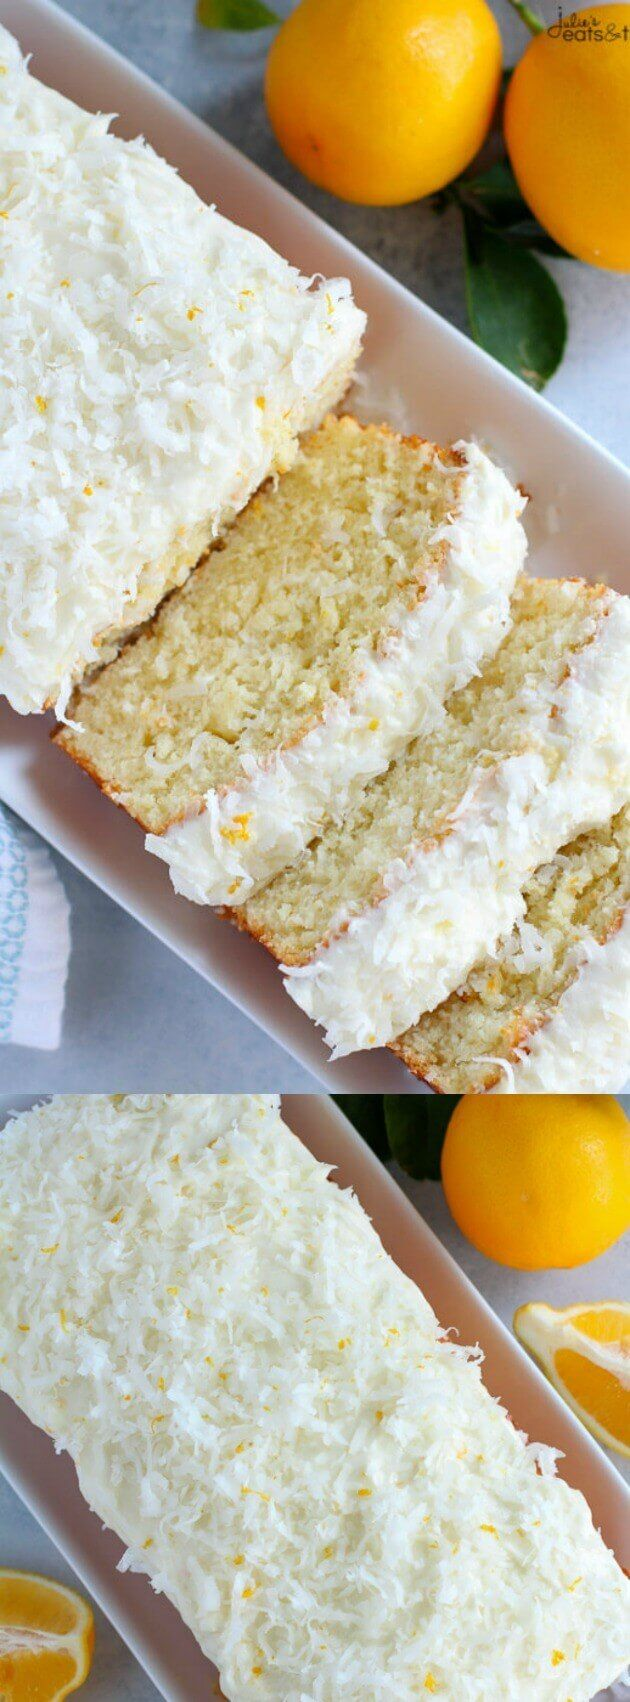 This Lemon Coconut Cake from Julie's Eats and Treats is the perfect springtime brunch treat! Moist, flavorful homemade cake is topped with the tastiest lemon and coconut cream cheese frosting!